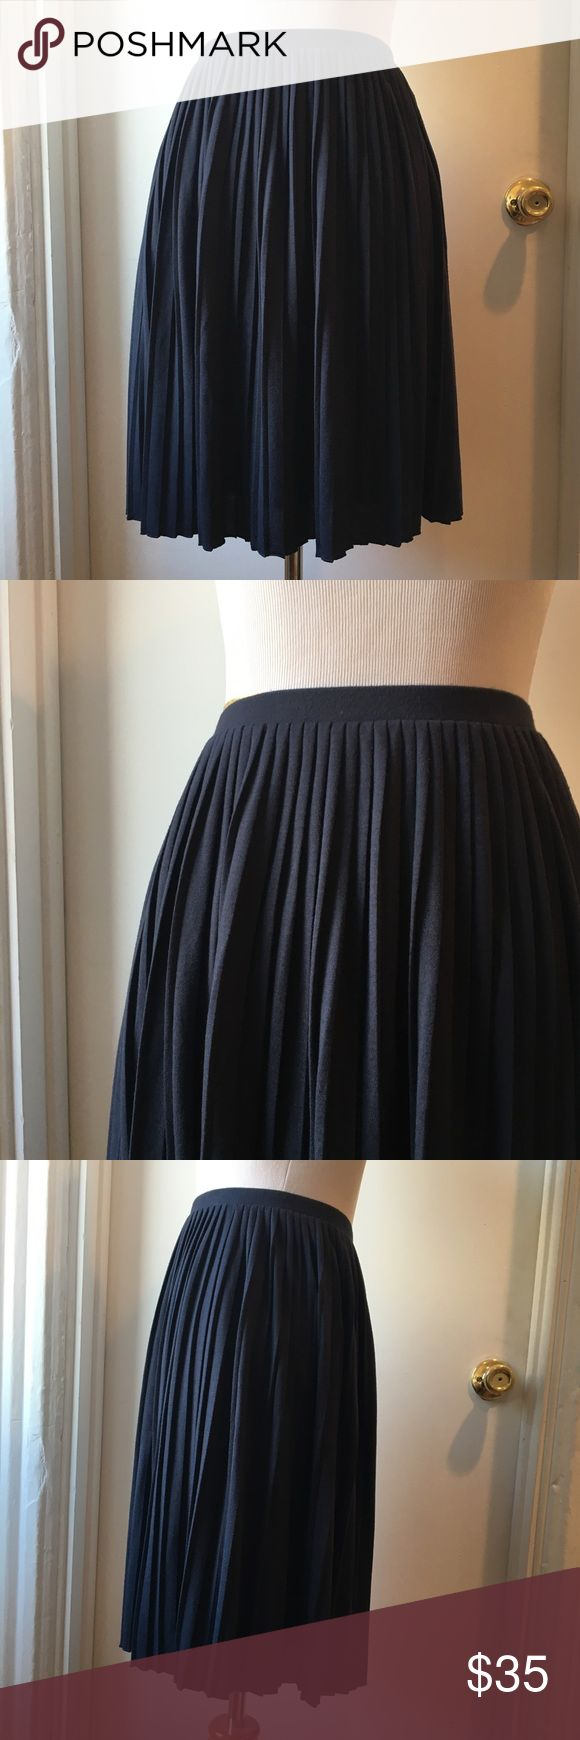 Uniqlo navy pleated skirt Dark navy accordion pleats skirt. Elastic waist. Knee length. Fully lined. A line. Size small. 26-27 inch waist. Uniqlo Skirts